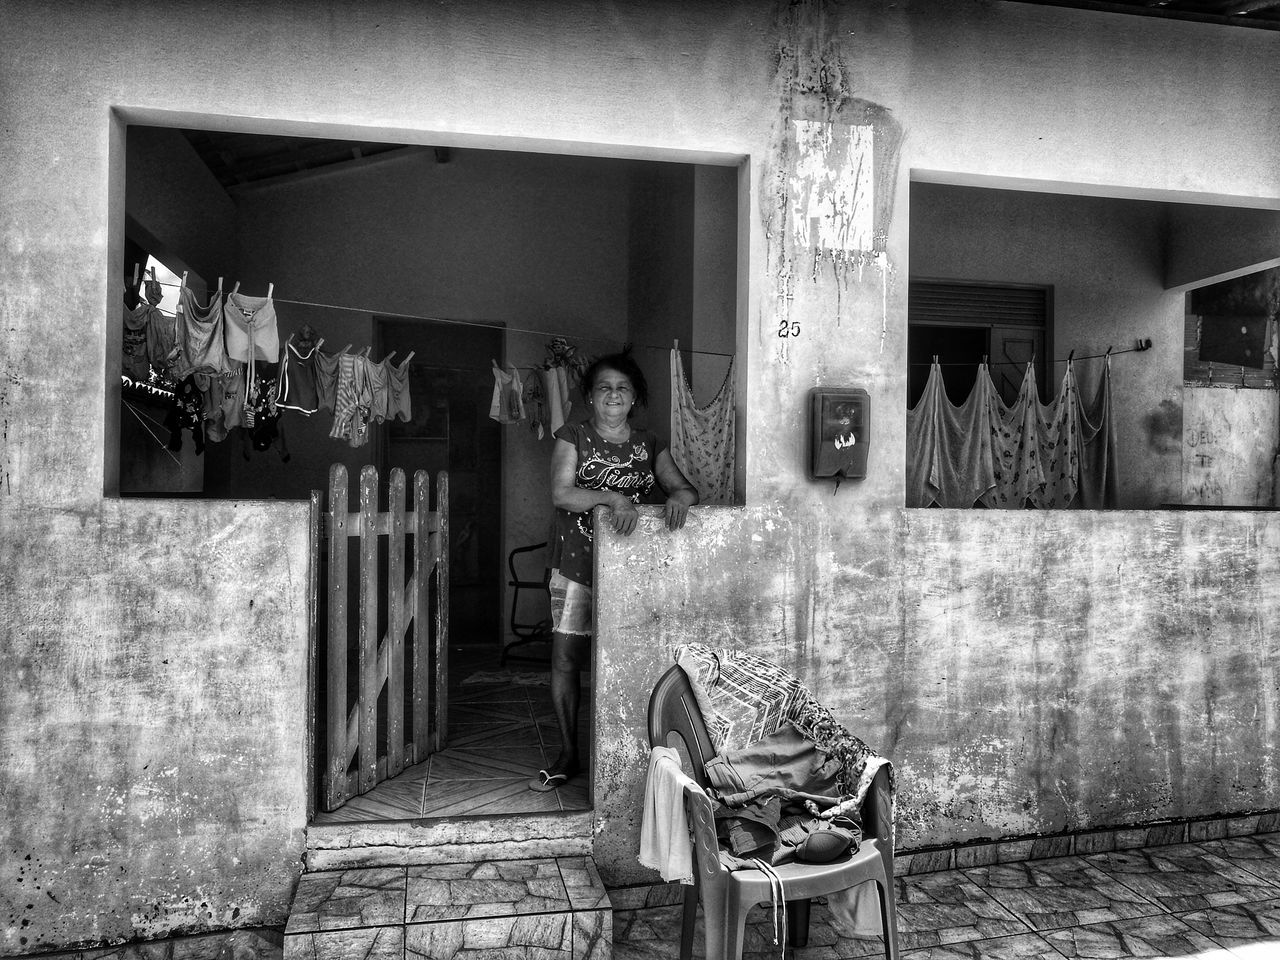 Maracajau Brasil Window No People Day Built Structure Chair Architecture Outdoors Building Exterior